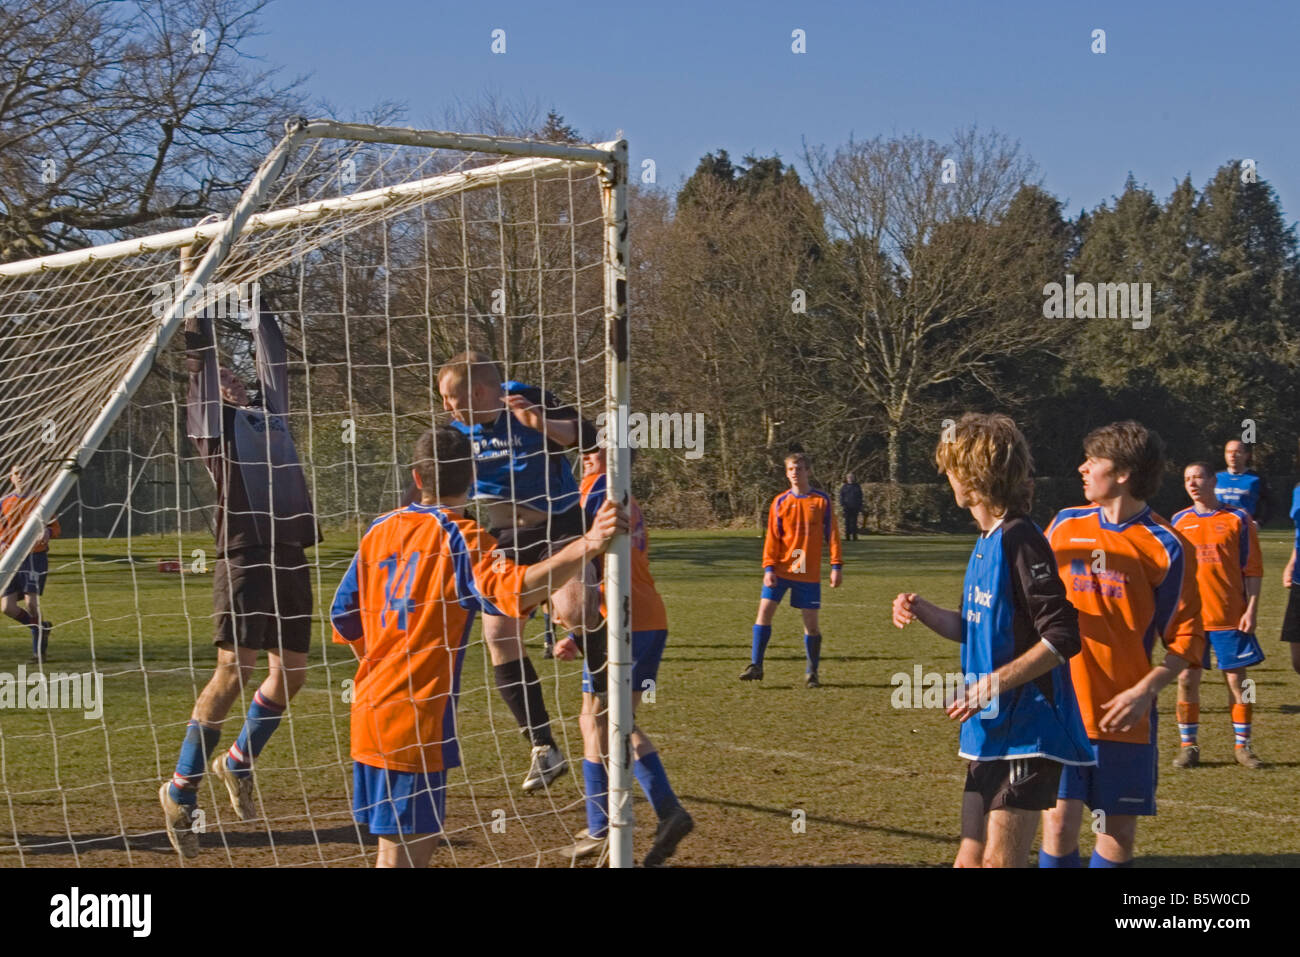 Amateur sunday league Football Match Goalkeeper Catching the Ball Footballers players - Stock Image